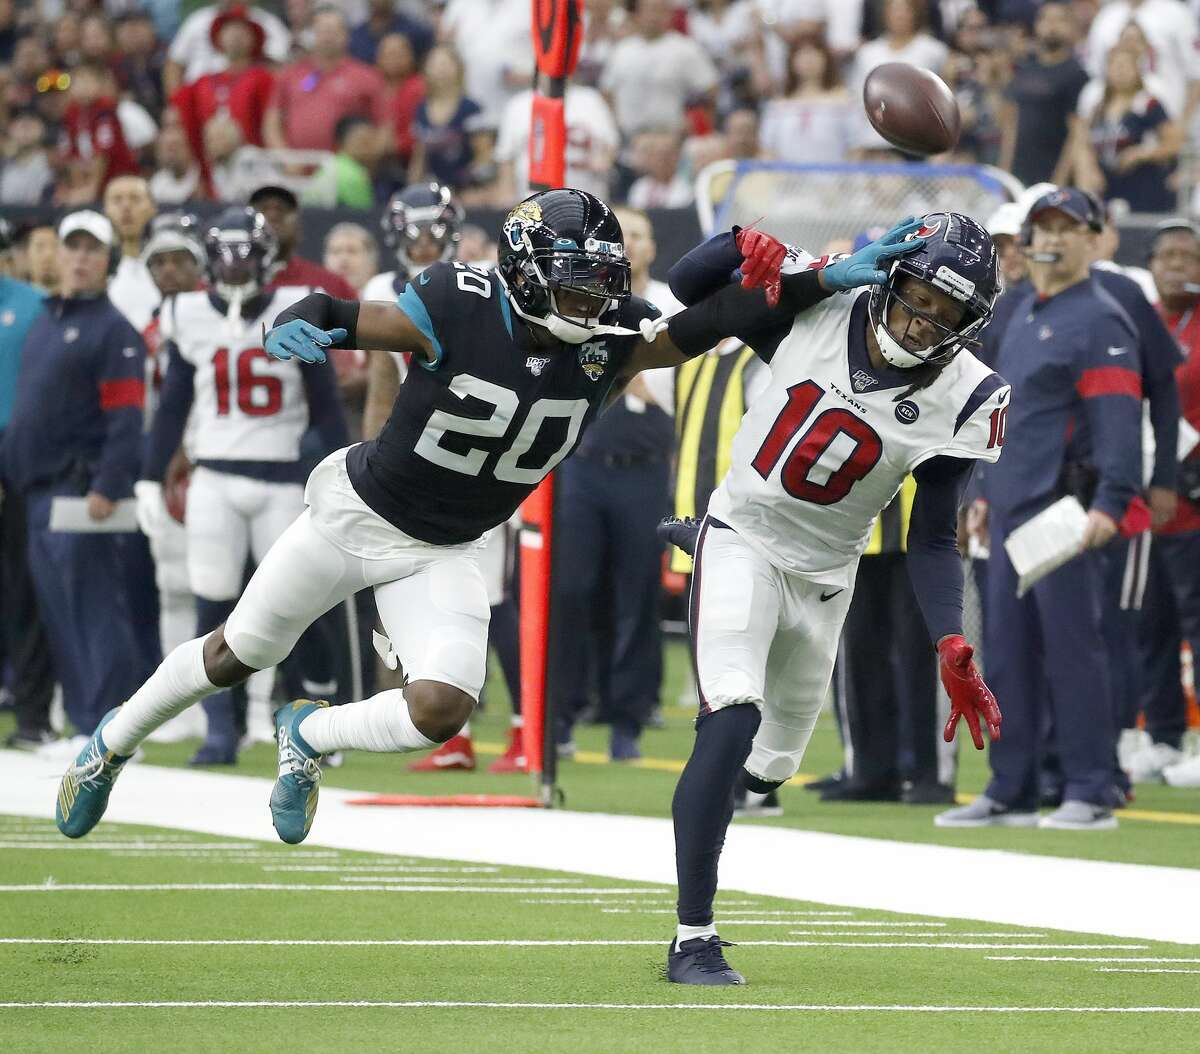 Jalen Ramsey (20) has requested a trade from the Jaguars. Do the Texans have the capital to swing another big deal and land the star cornerback?